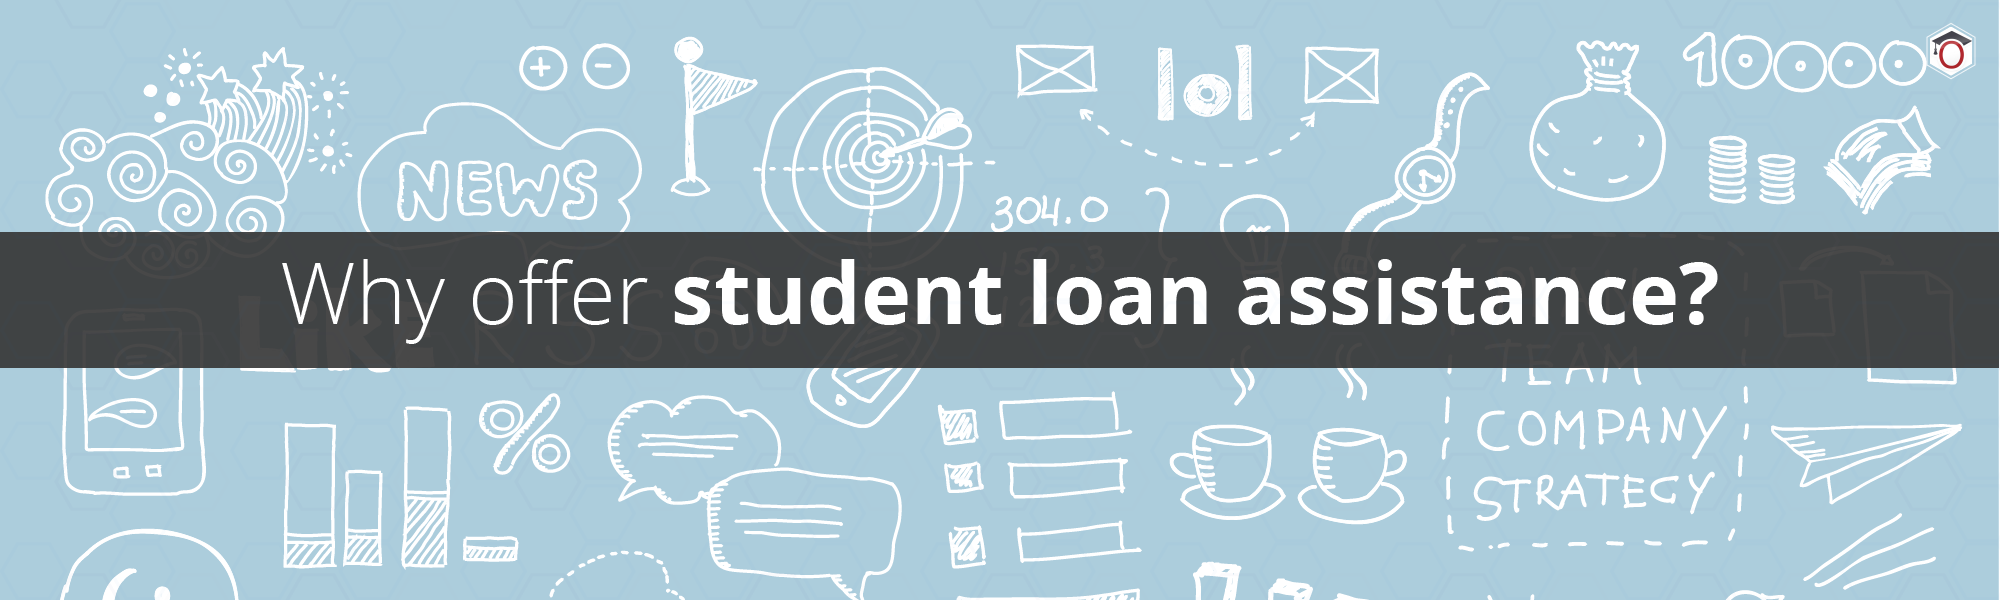 5 Reasons to Offer Student Loan Assistance